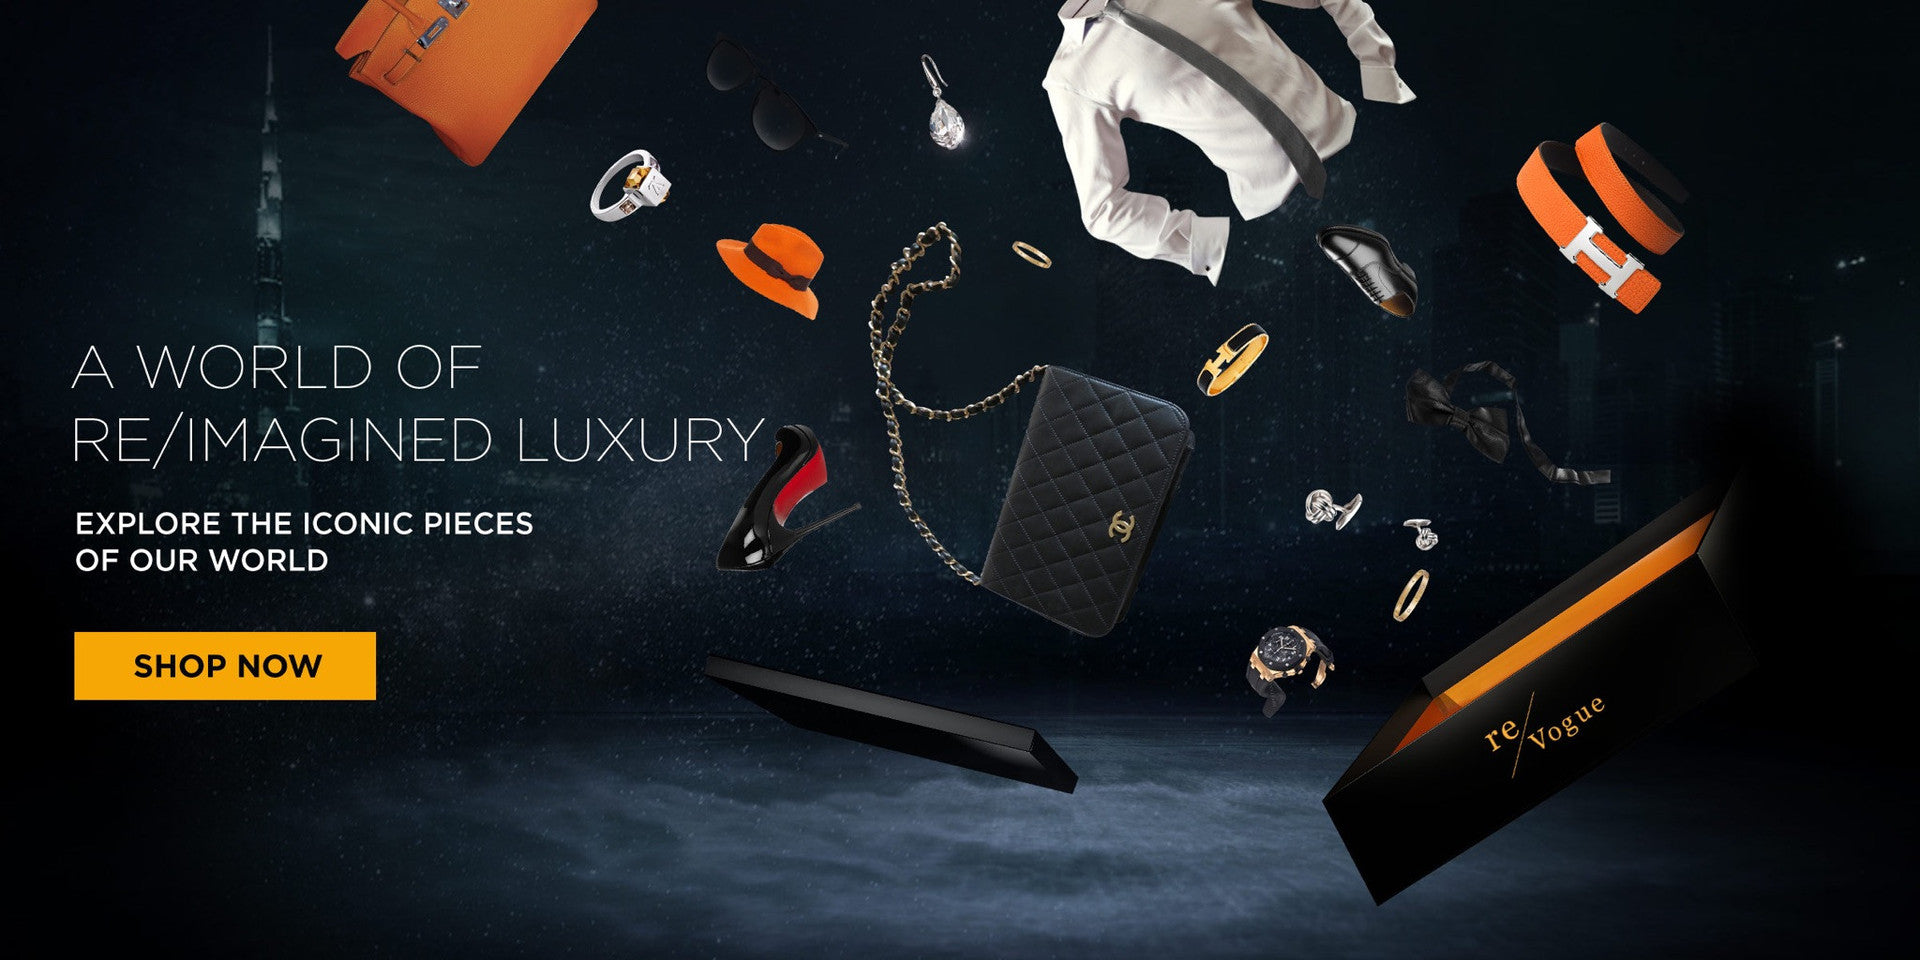 Shop Authentic Pre-Owned Luxury Designer Luxury Brands at Discount Online At Re-Vogue USA UAE KSA